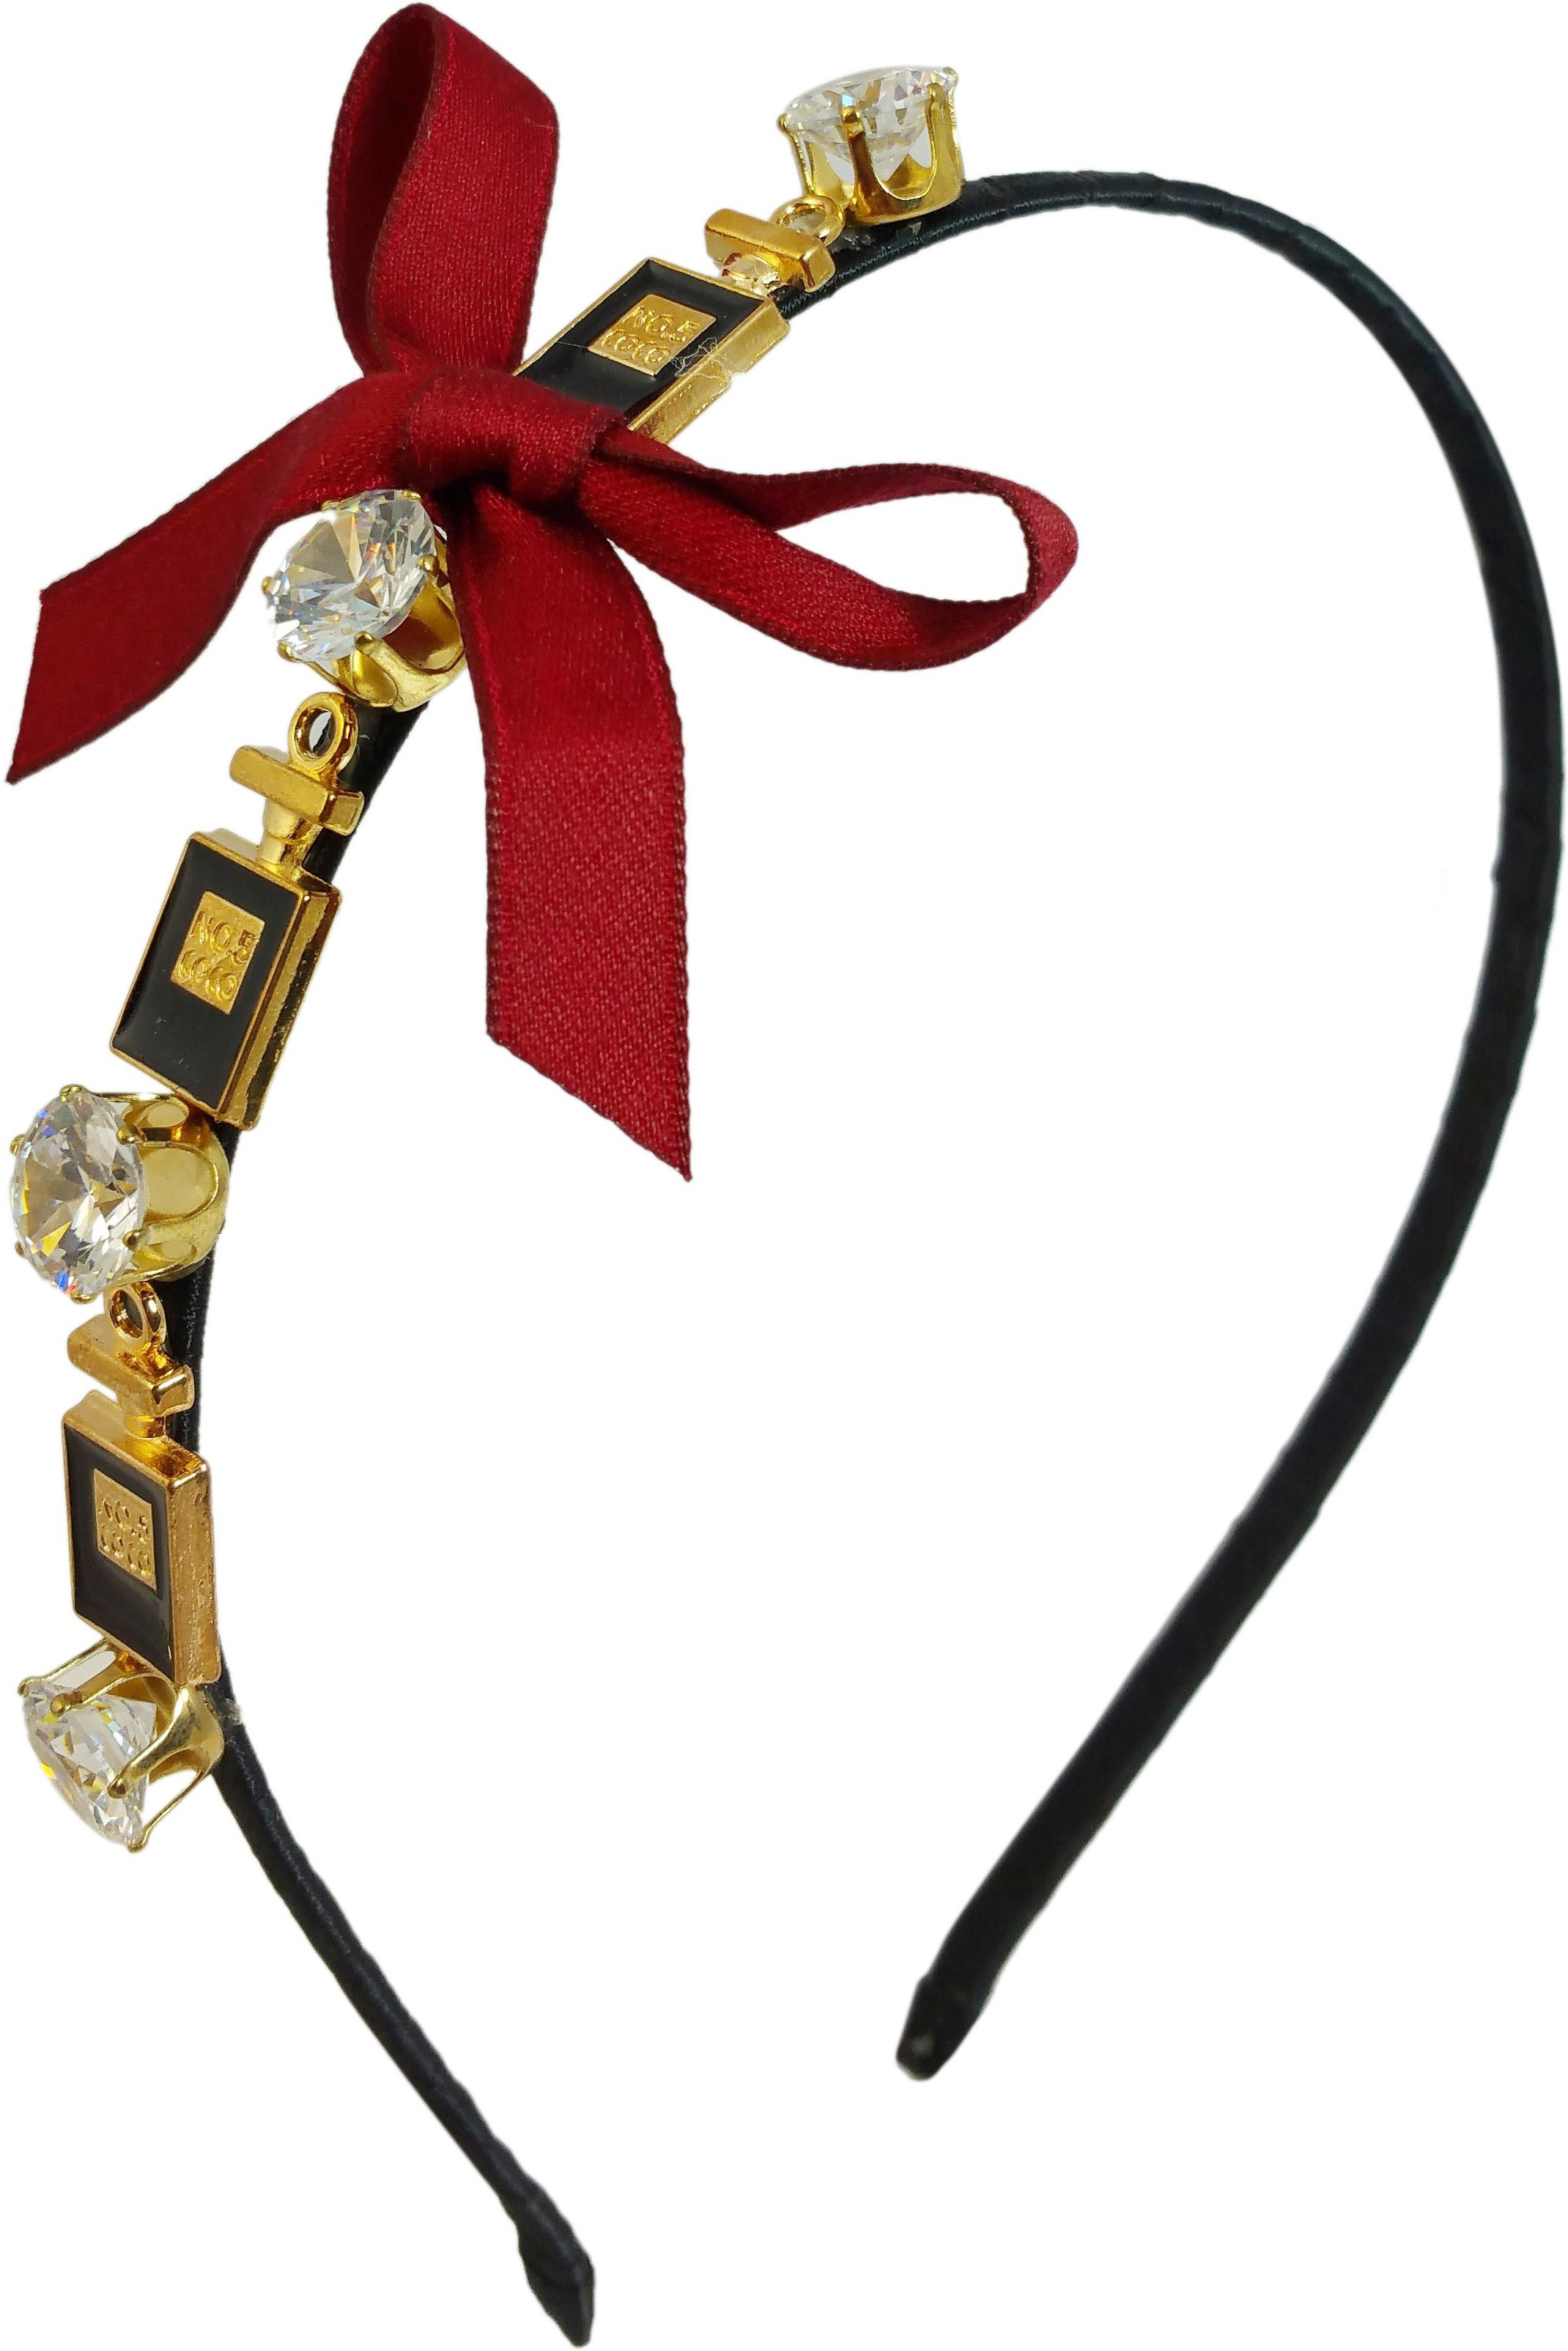 Ammvi Creations Badges and CZ Solitaires Ornated for Women Hair Band(Multicolor)